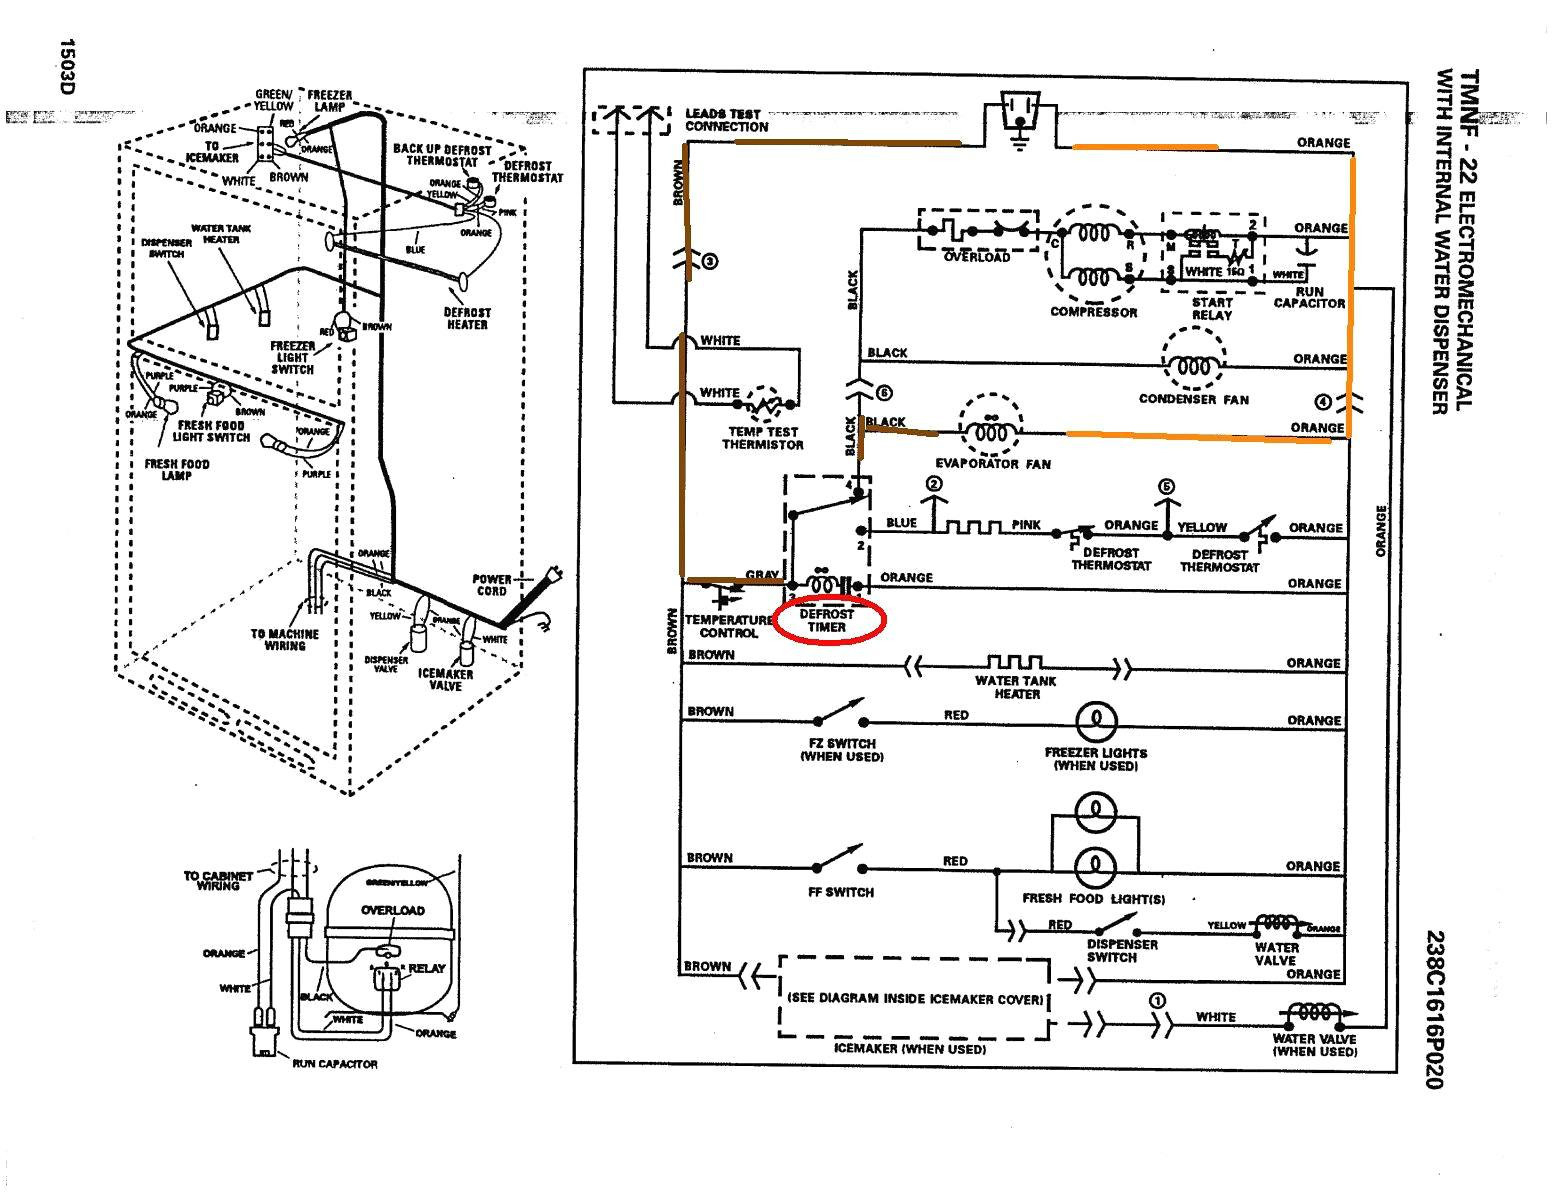 hight resolution of wiring diagram for kenmore refrigerator wiring diagrams favoriteswiring schematic kenmore refrigerator wiring diagram inside wiring diagram